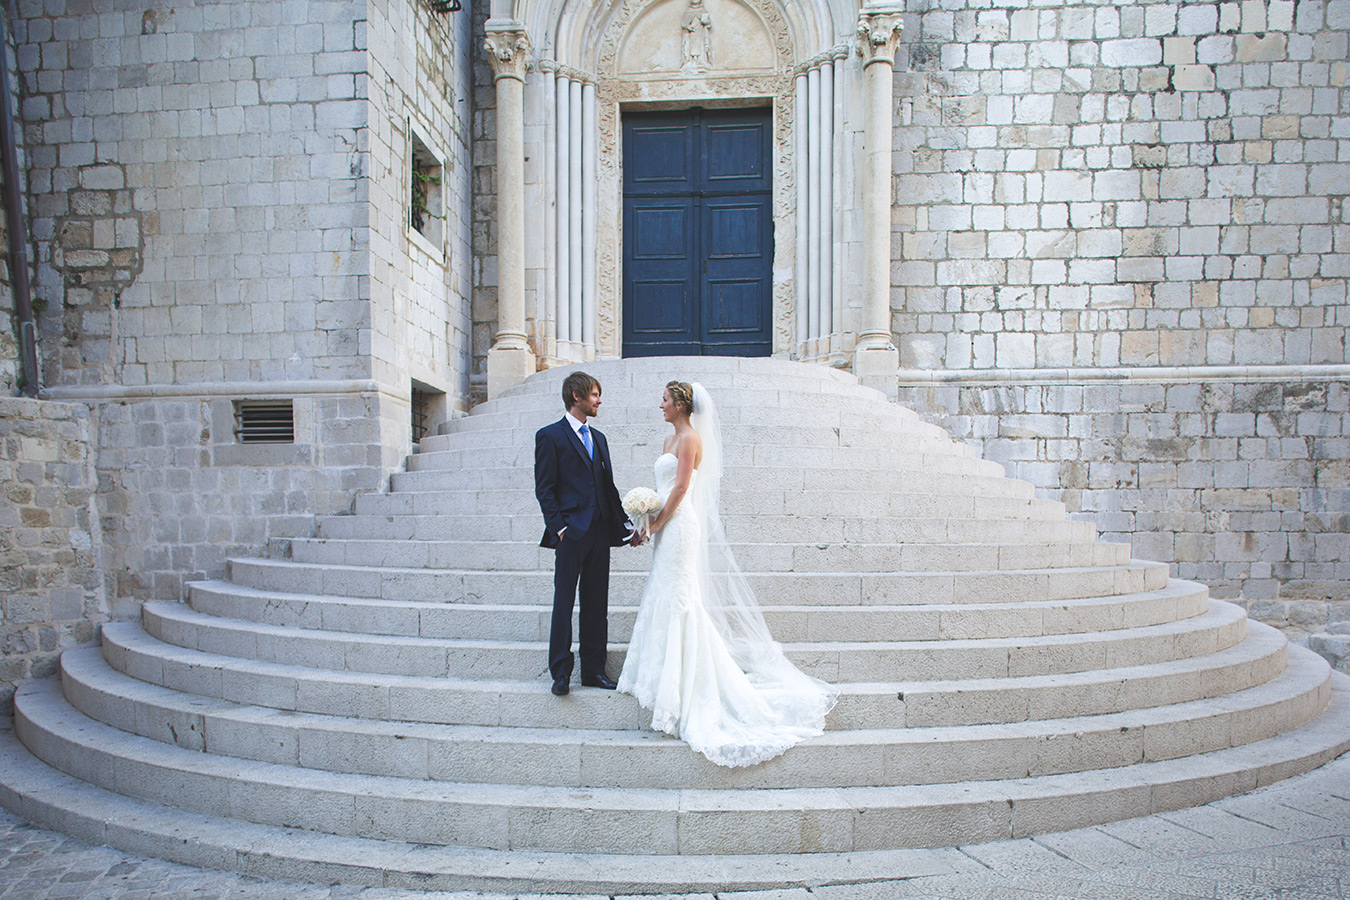 One of a set of images taken at this chic destination Wedding of Jenna & Nick. The stylish old town of Dubrovnik, Croatia.  The couple pose on the steps.  Photography by Matt Porteous